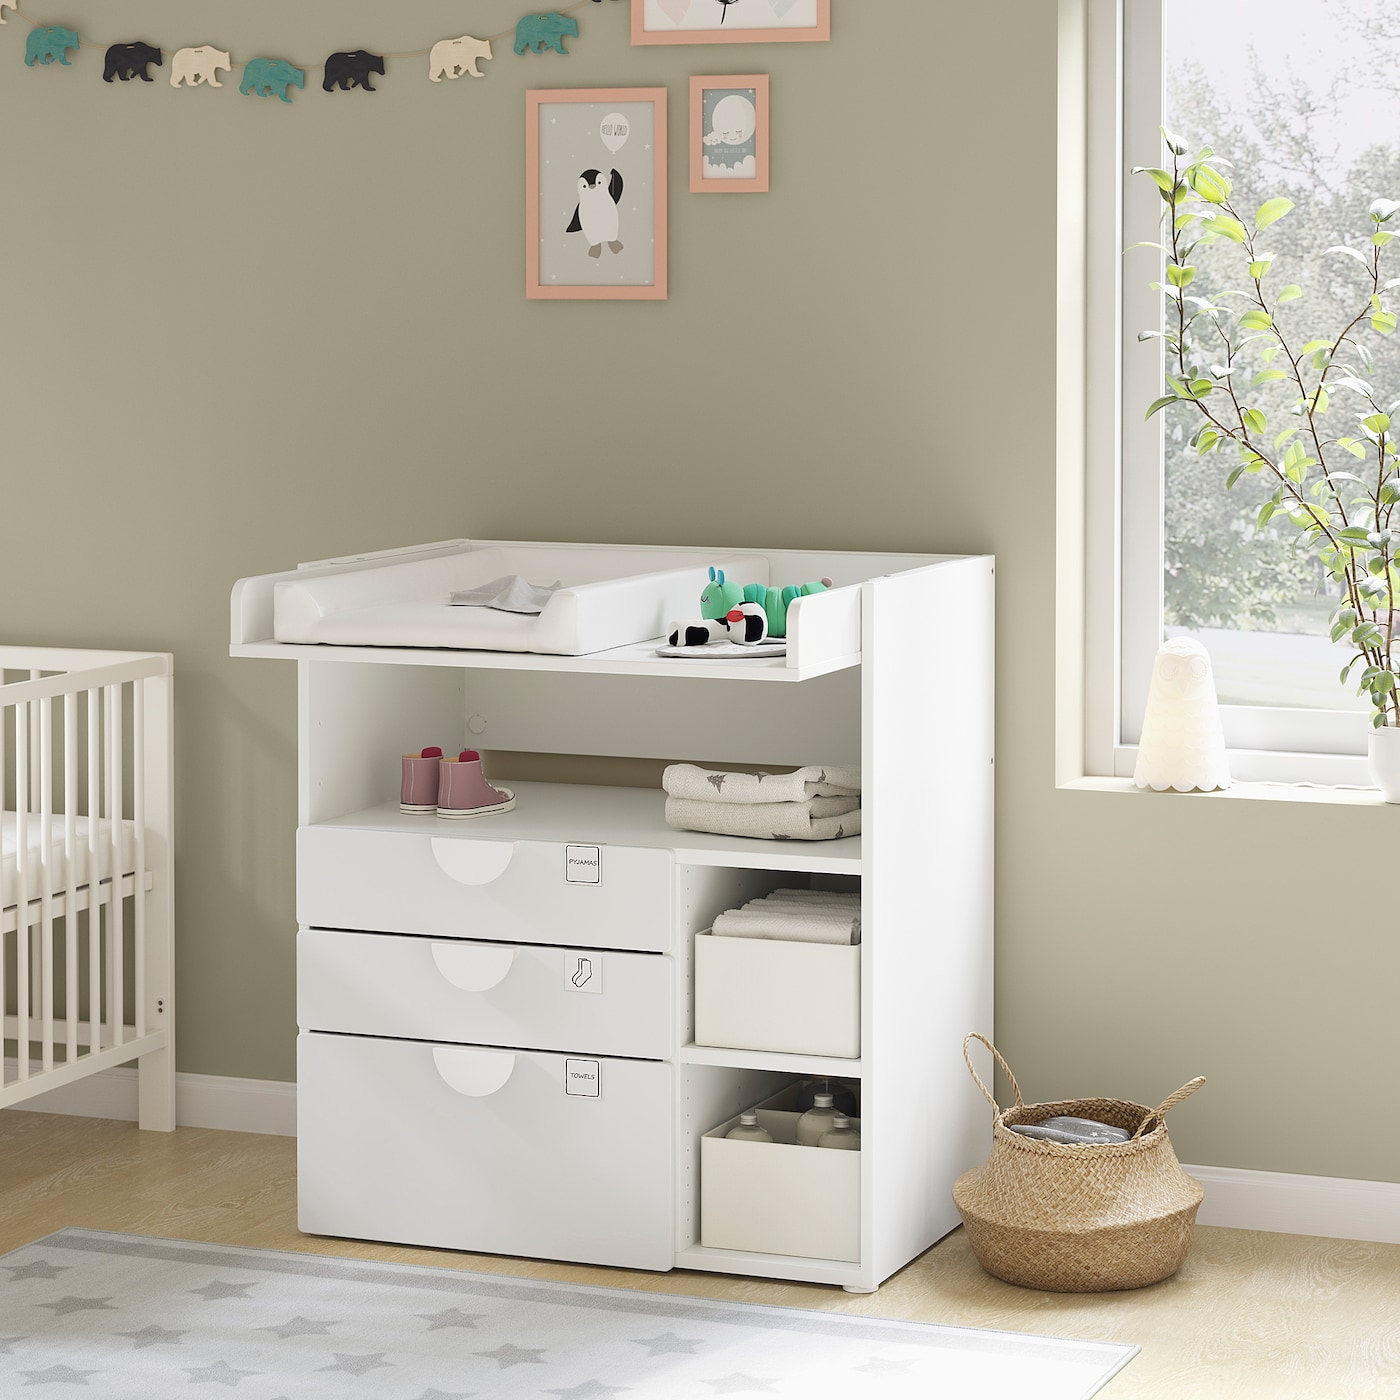 SMÅSTAD Changing table, white white/with 3 drawers, 90x79x100 cm